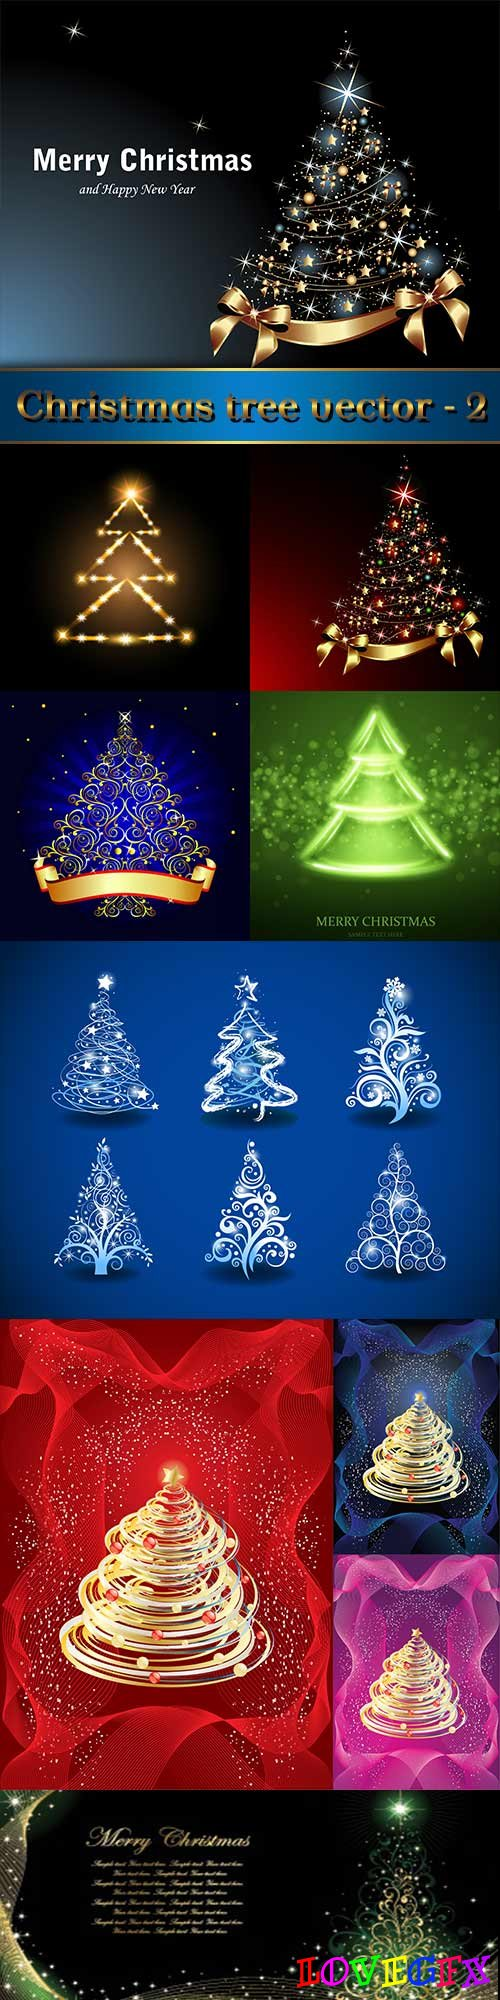 Christmas tree vector - 2